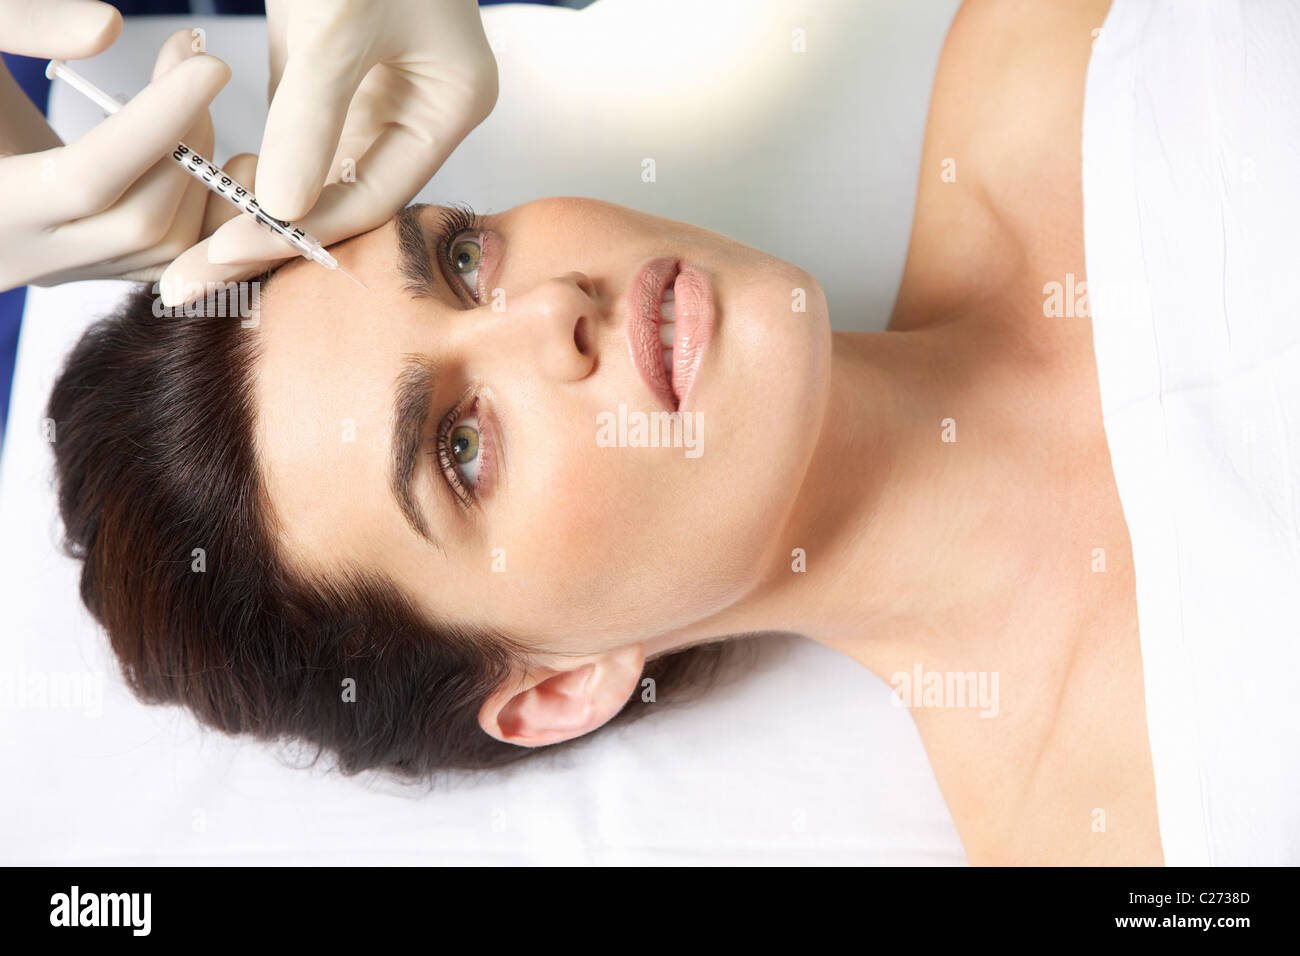 Woman Receiving Botox Injection on Forehead Stock Photo